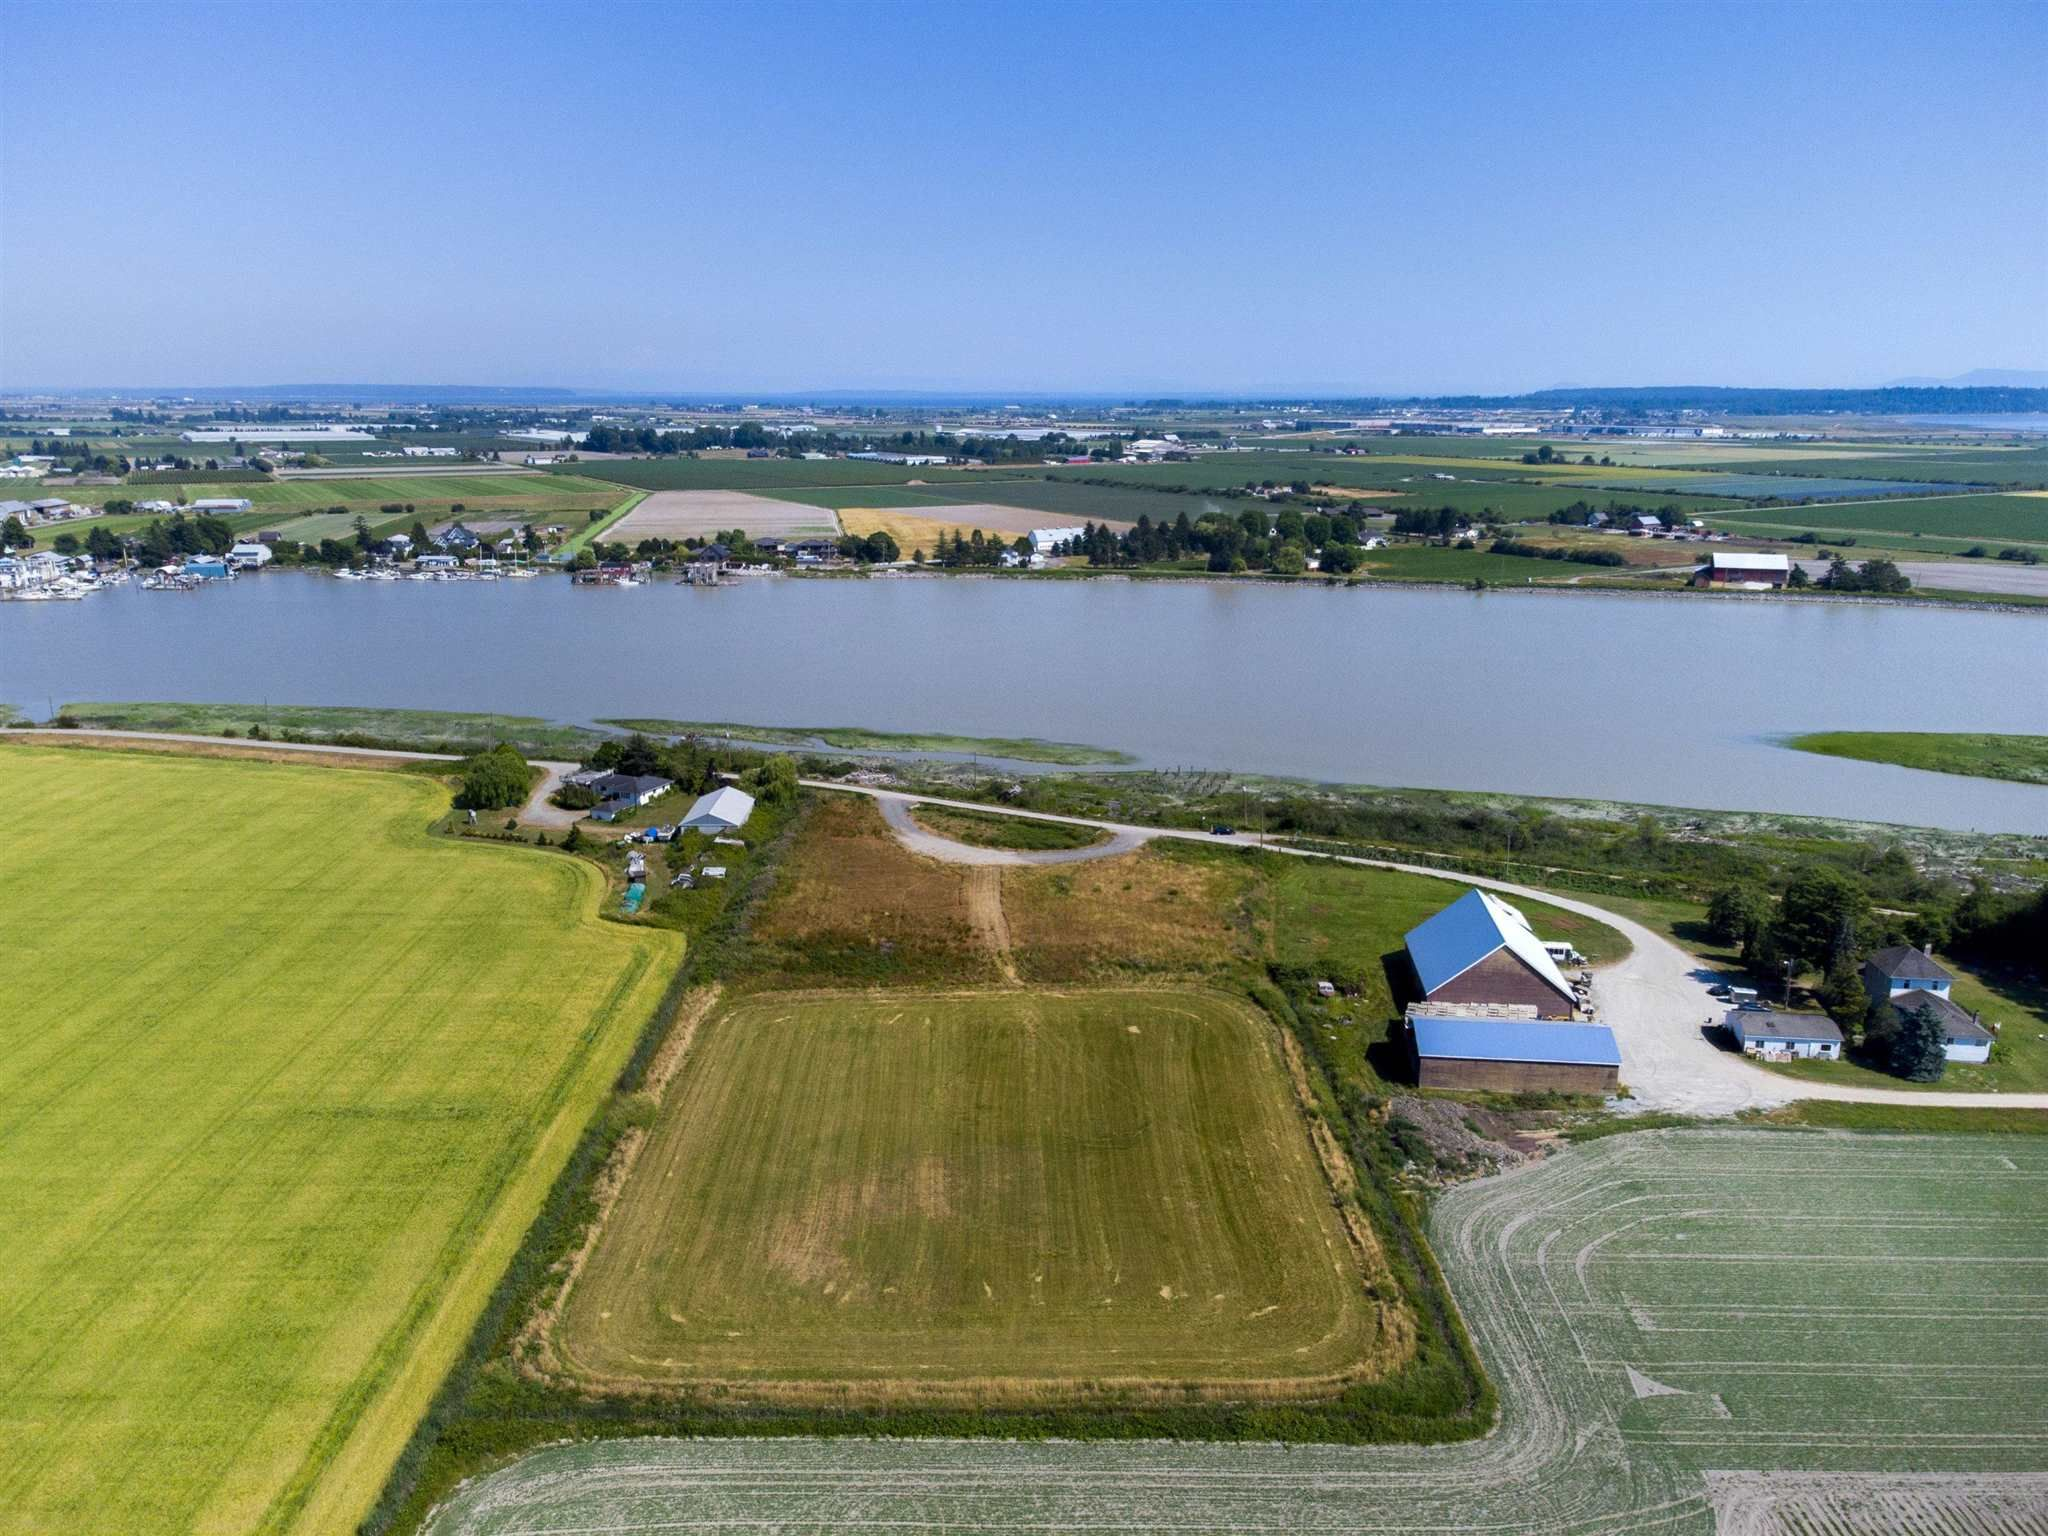 Main Photo: 3995 TRIM Road in Delta: Westham Island Land for sale (Ladner)  : MLS®# R2596976